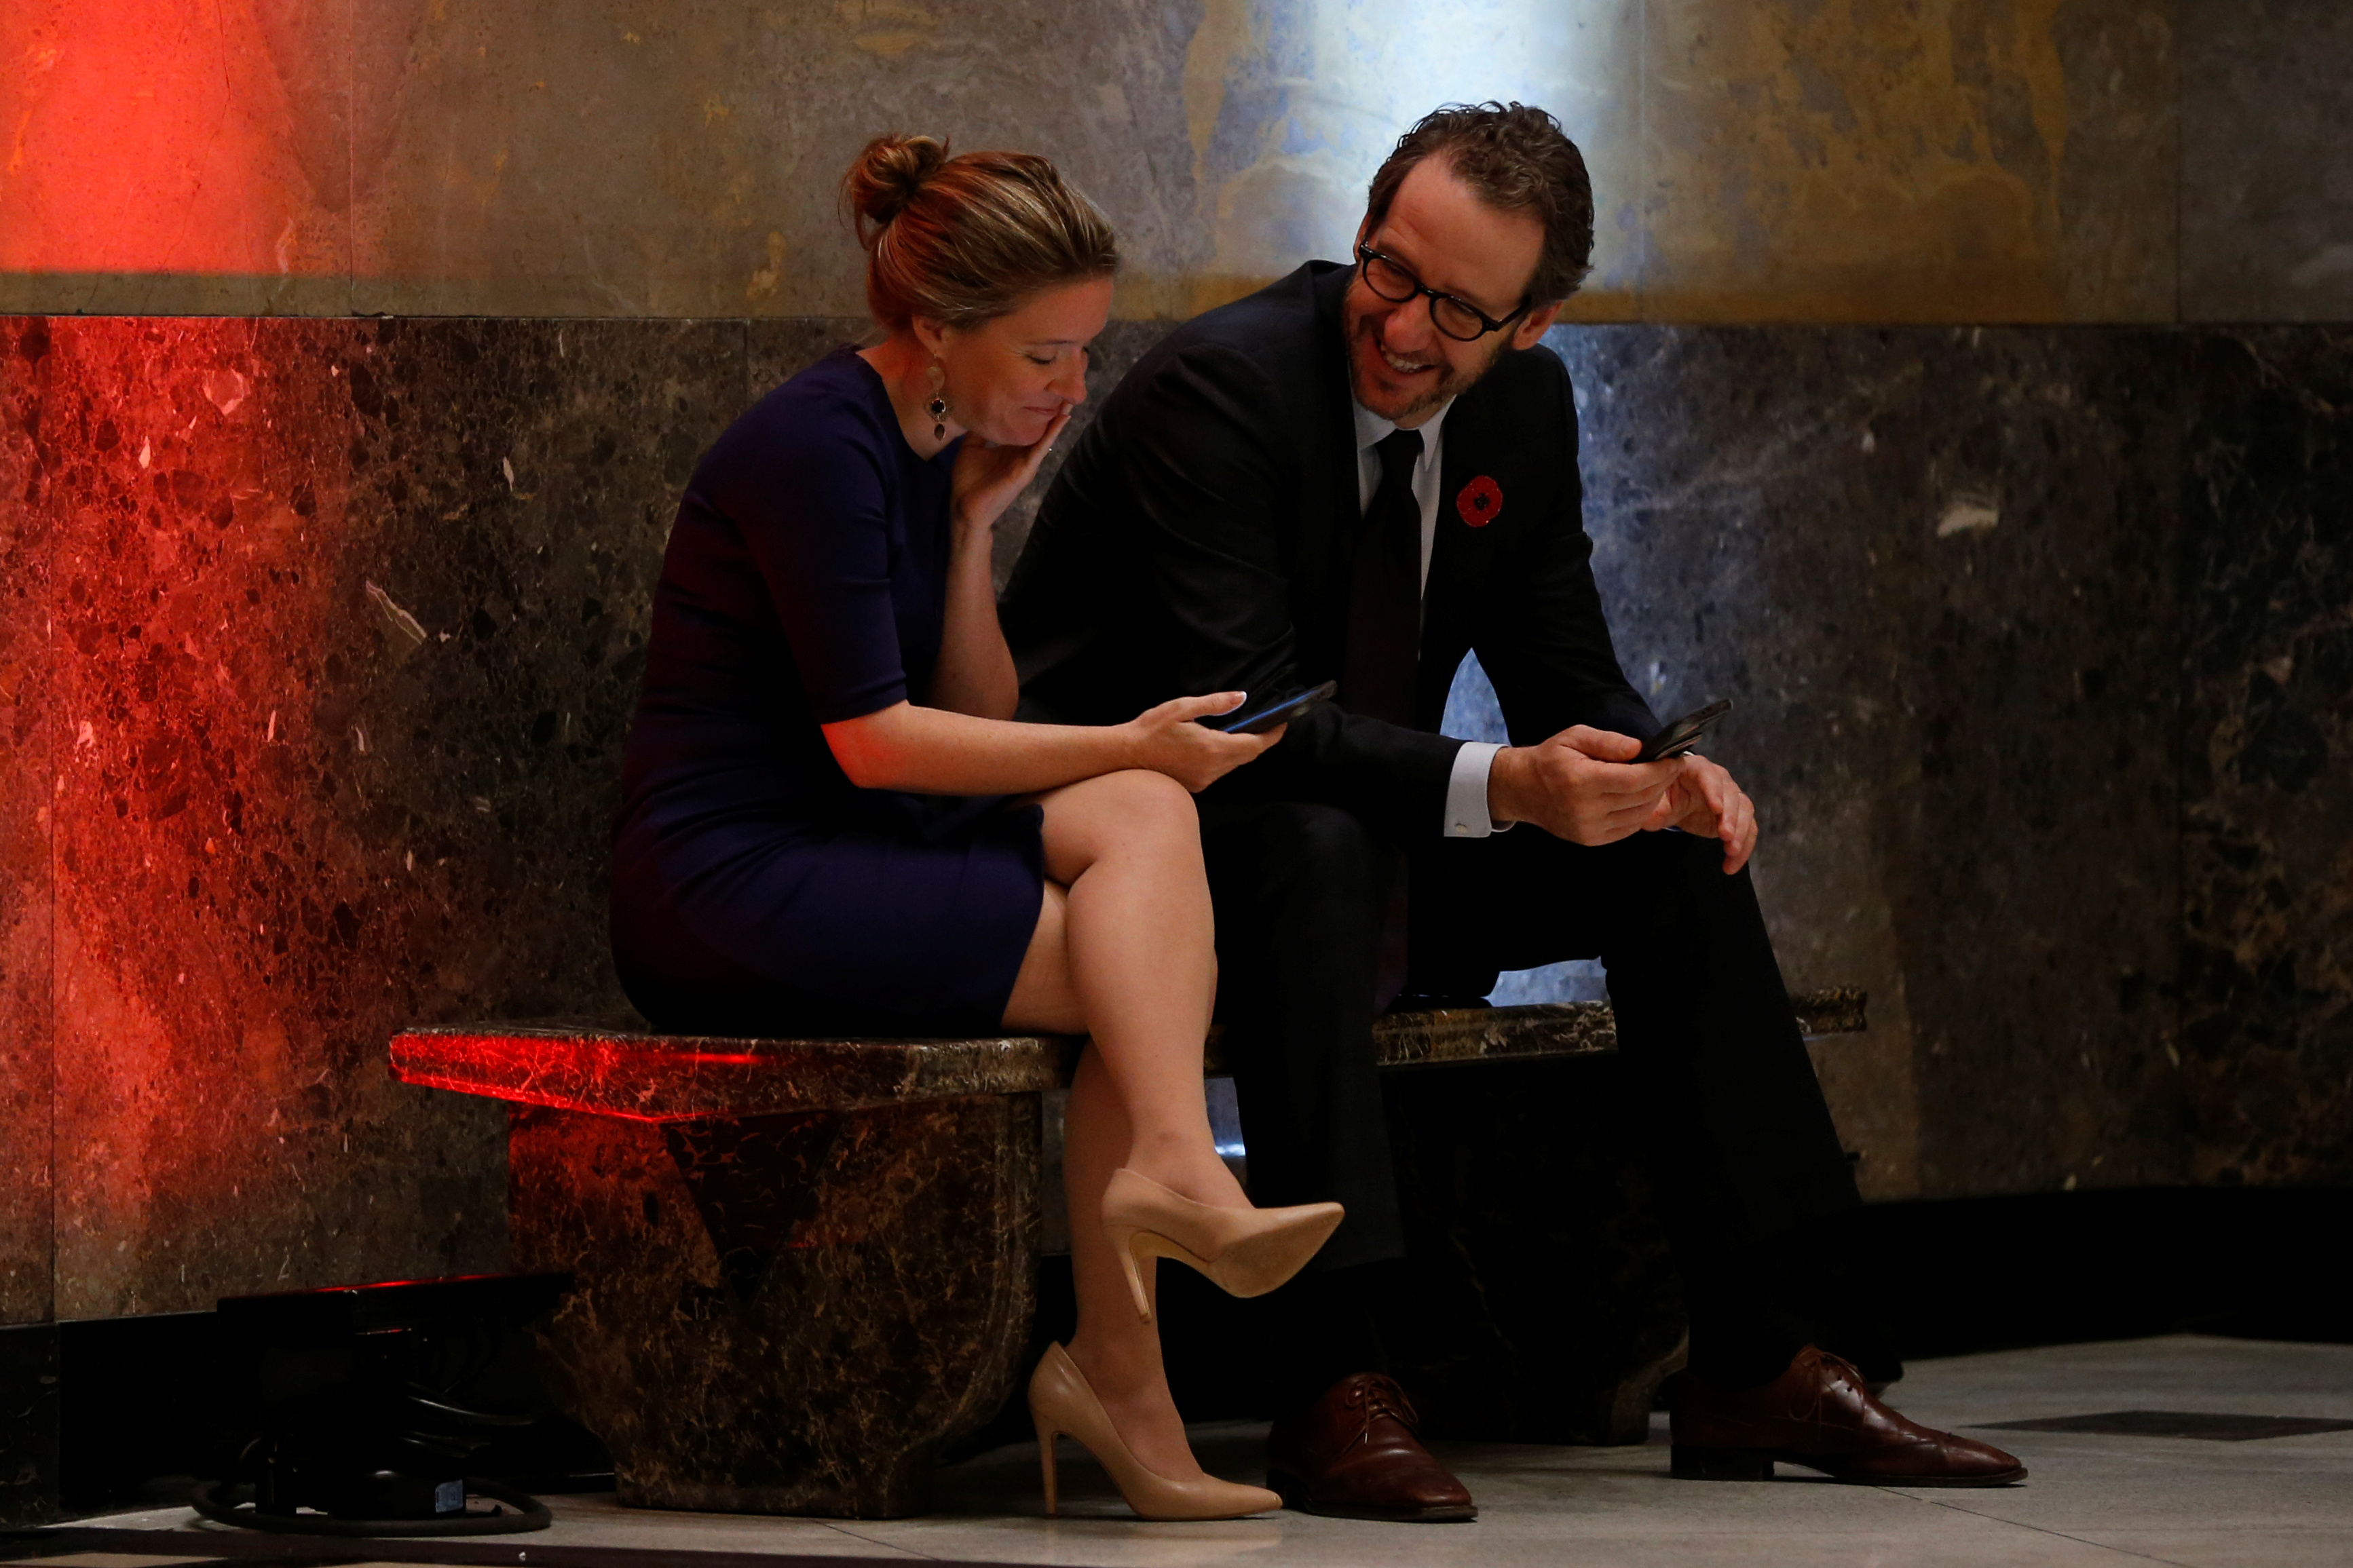 Canadian Prime Minister Justin Trudeau's chief of staff Katie Telford and principal secretary Gerald Butts attend a town hall with high school students in Ottawa